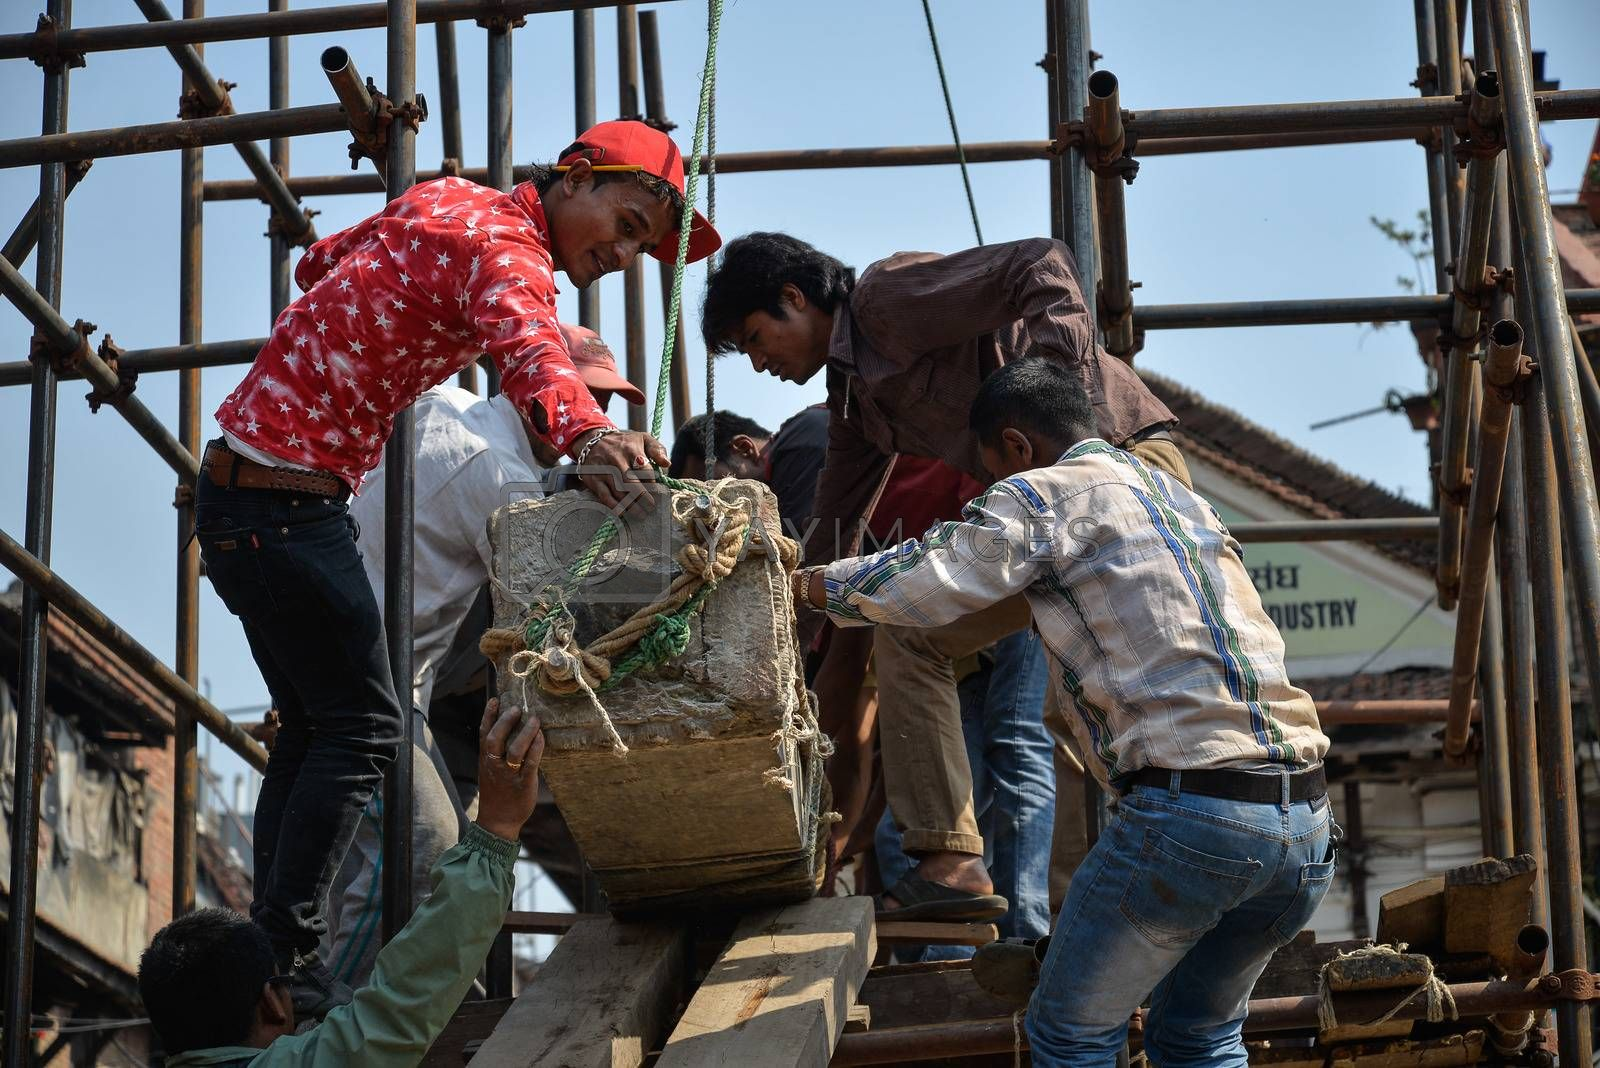 NEPAL, Kathmandu: Men begin rebuilding heritage sites damaged by the earthquake a year ago, on April 25, 2016, at Patan Durbar Square in Kathmandu, in Nepal, during the first anniversary of the quake.Some 9,000 people were killed in the 7.8-magnitude quake that struck April 25, 2015 and its aftershocks. .